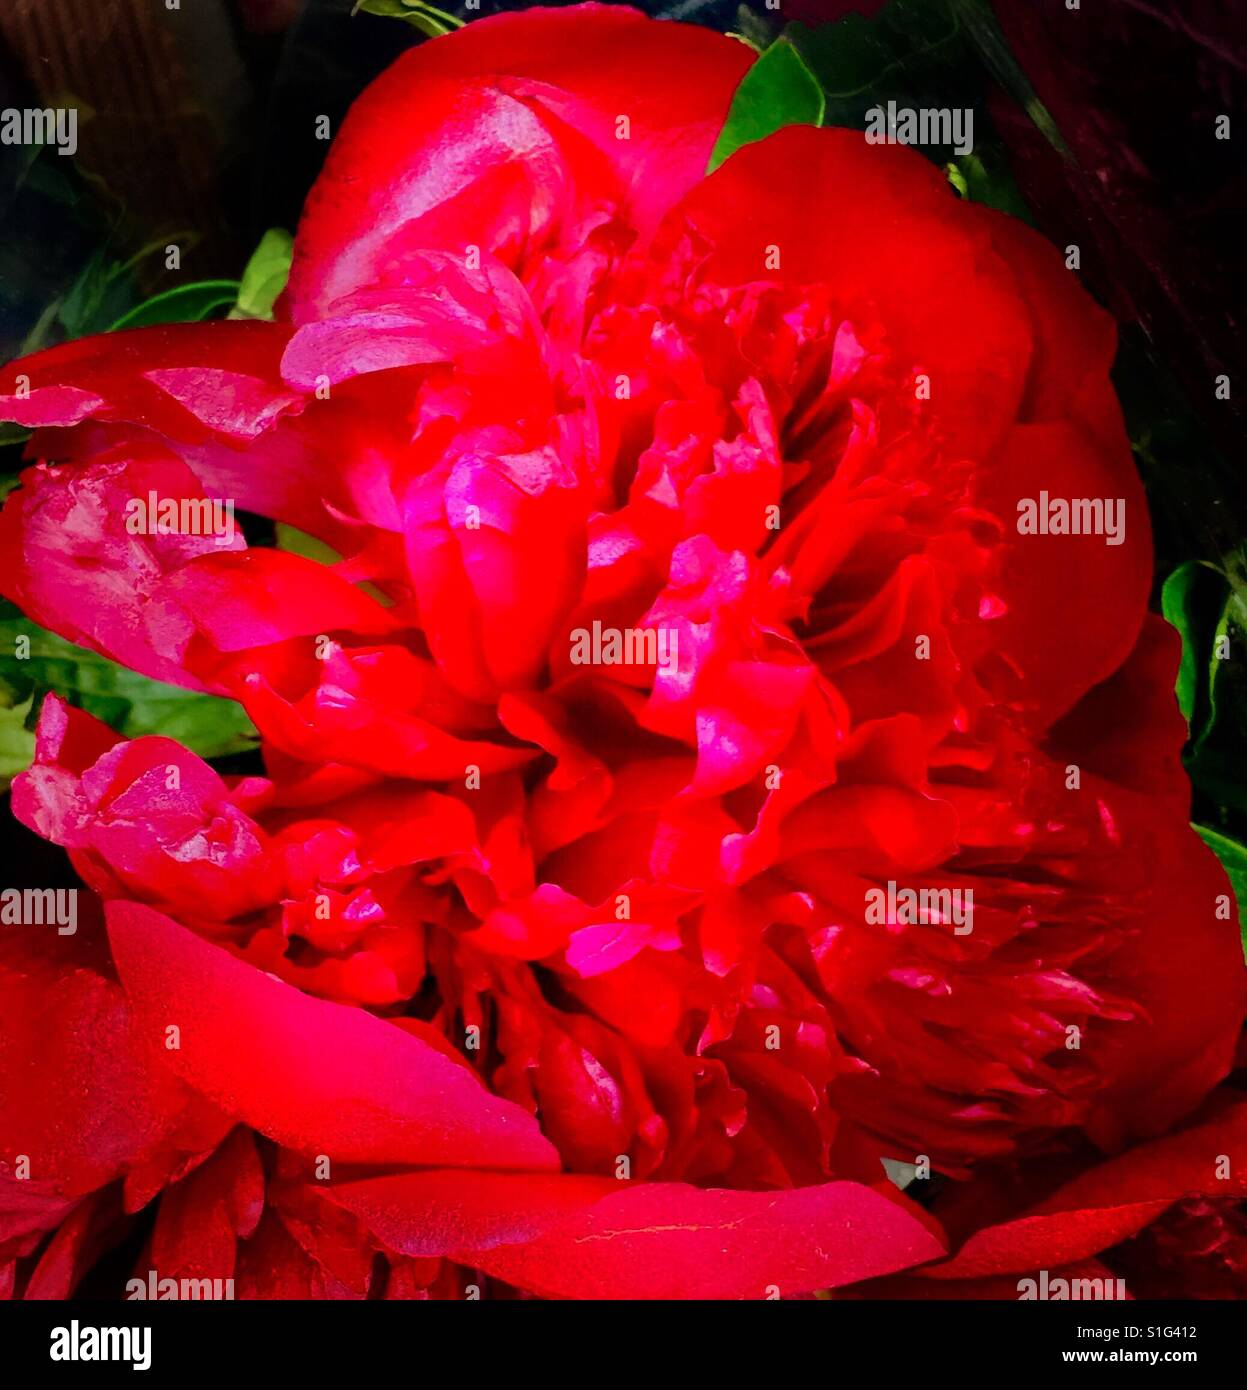 Radiant Ruby Red Peony reminiscent of the Victorian period - Stock Image